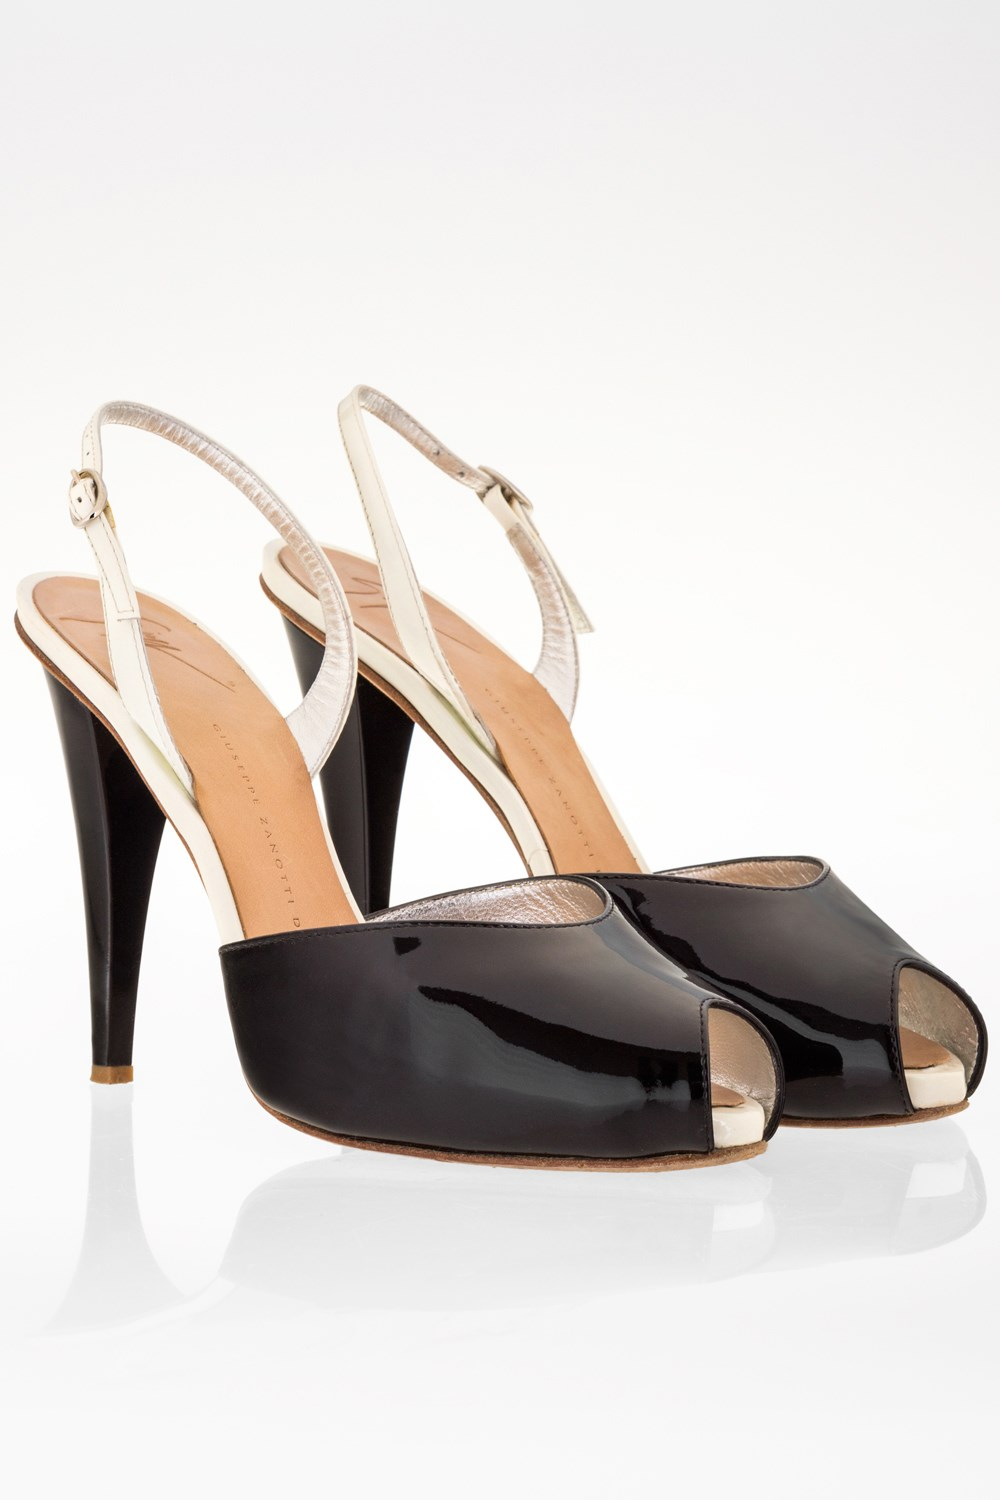 Black and White Patent Leather Peep-Toe Slingbacks   Size  38 - Fit ...